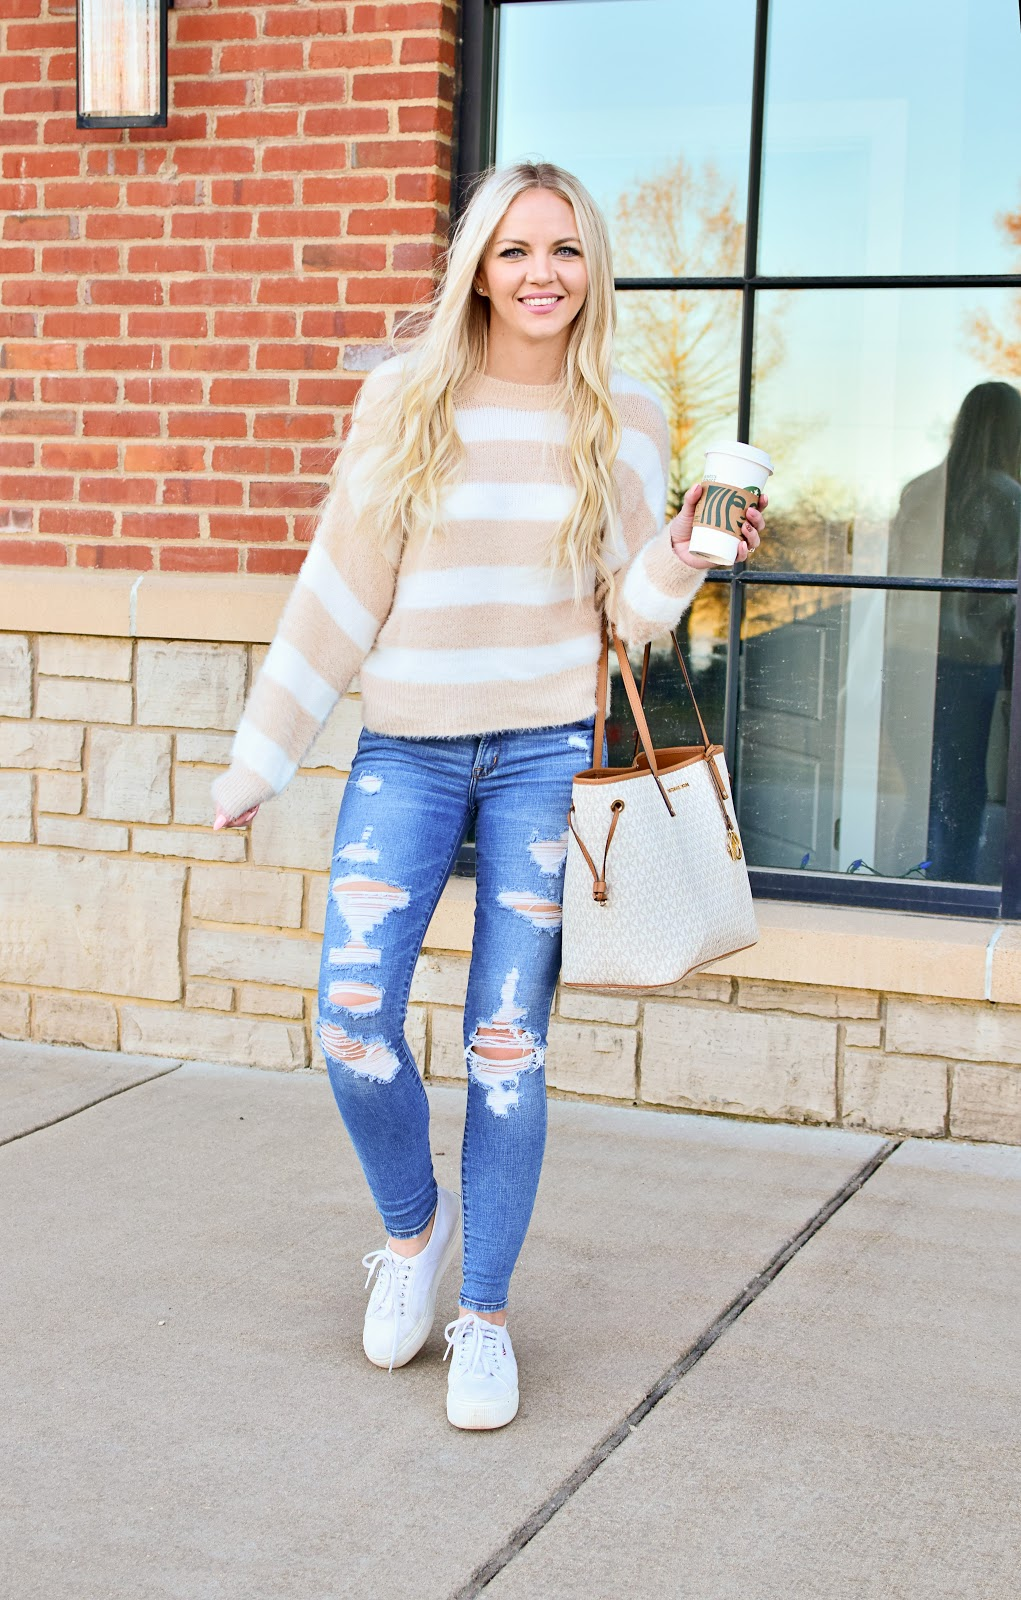 Spring Style 2020 Outfit Sweater Striped Fluffy Fuzzy Soft Sweater Beige Cream Denim Black High Waist Jeans Denim Ripped Knee Gucci Belt Dupe Louis Vuitton Neverfull MM Bag Dupe Tote Michael Kors Logo Jet Set Tote White Skinny Jeans Ugg Mini Fluff Boots Superga Platform Sneakers Sam Edelman Knee High Boots Target Find Wild Fable Abercrombie Jeans Starbucks Blogger Style Mom Blogger Mommy Blogger Mom Style Millennial Style